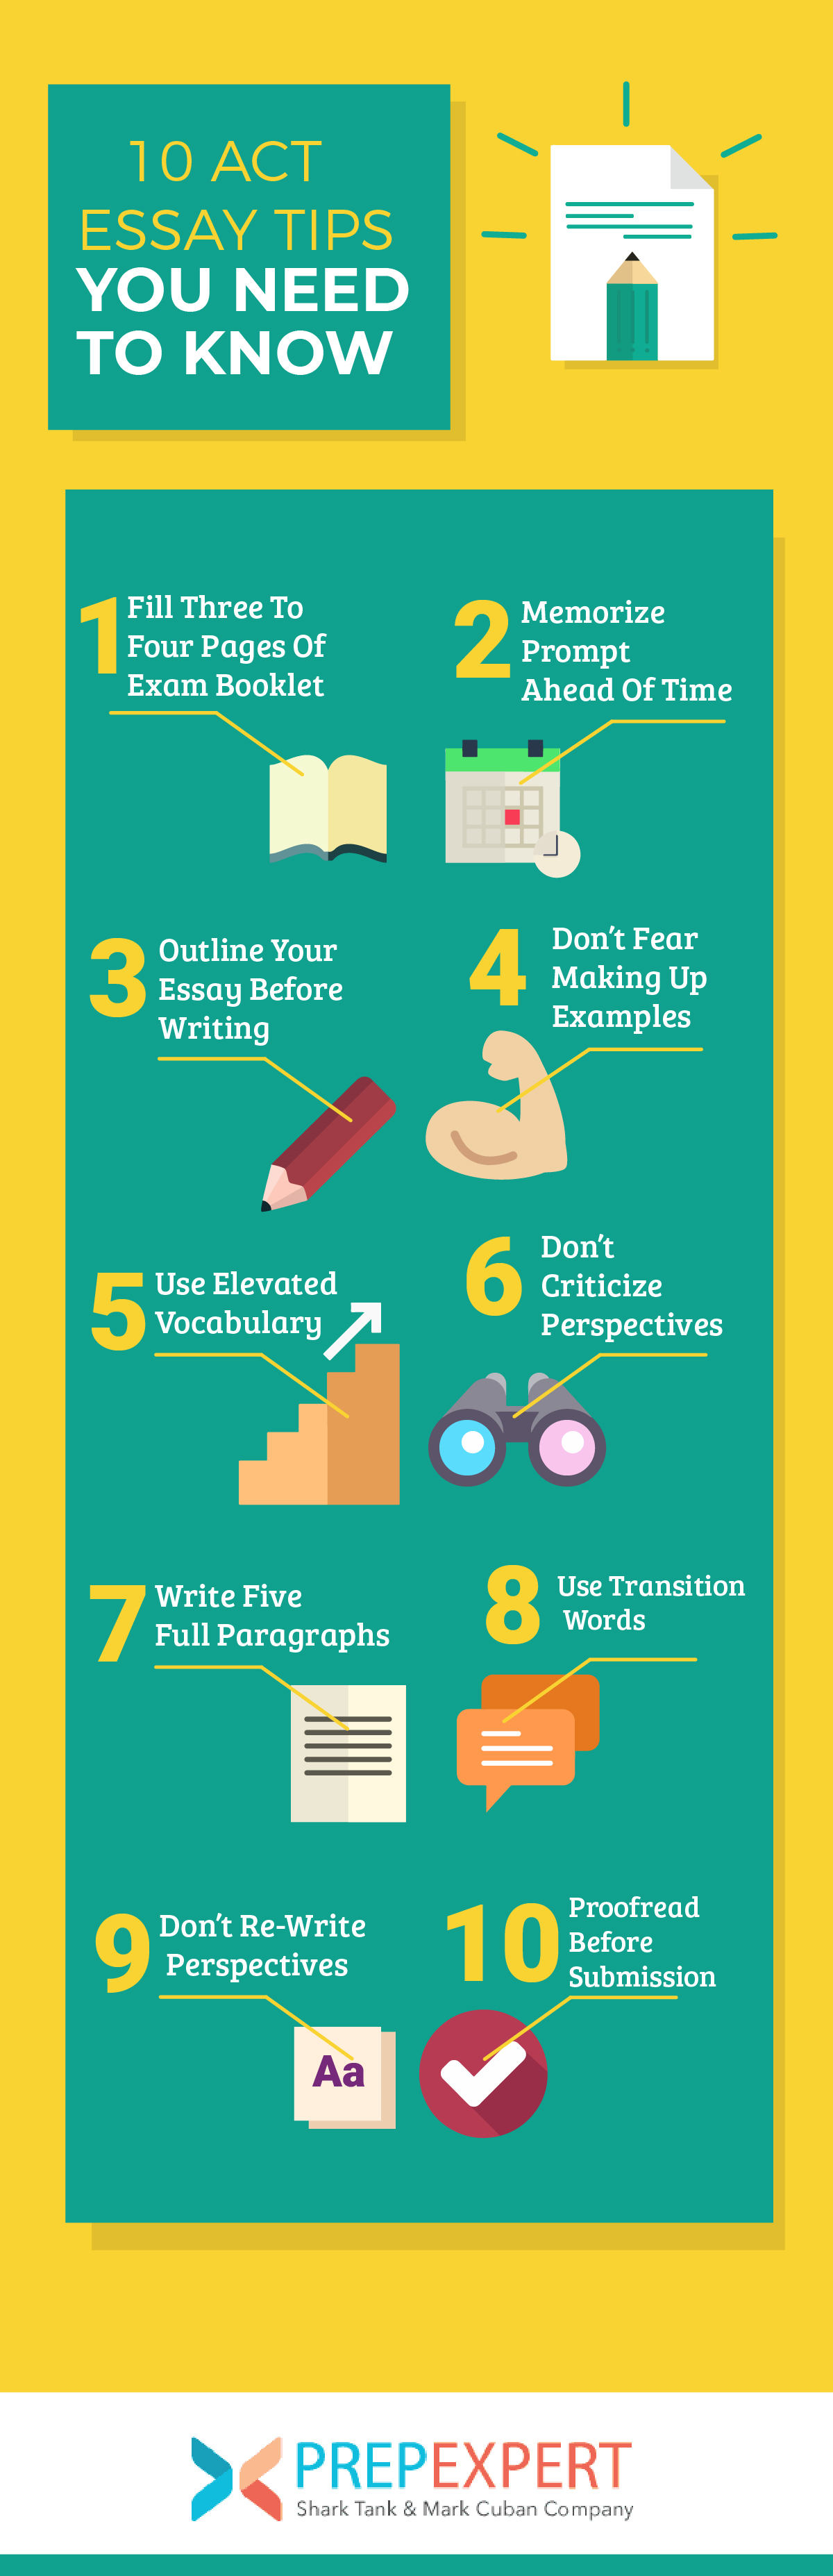 017 Essay Example Act 235585 Essayinfographics 052918 Fearsome Test Time Prompt 2016 Full